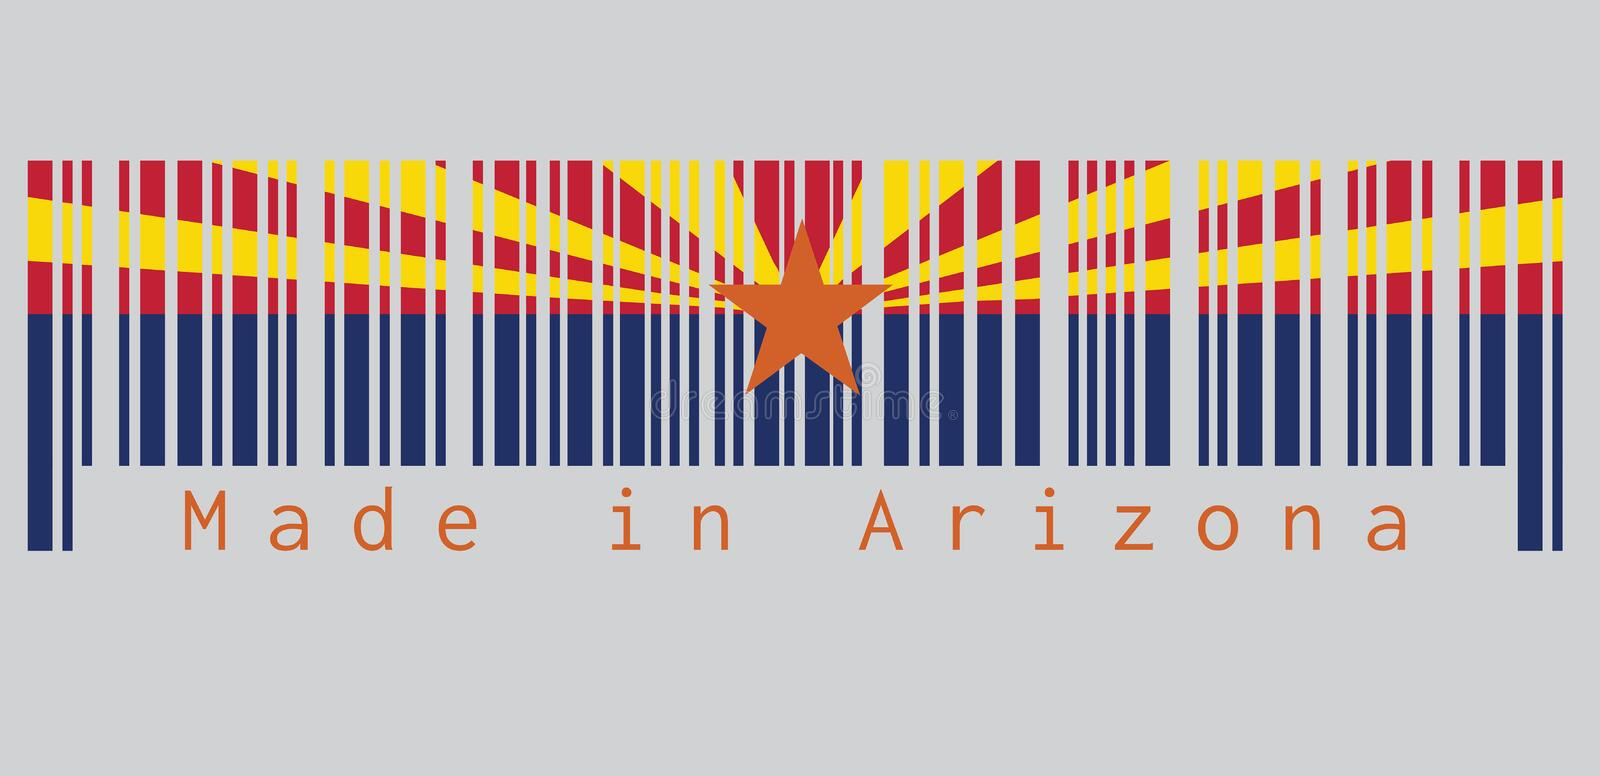 Barcode set the color of Arizona flag, The states of America, red and weld-yellow on the top half. vector illustration